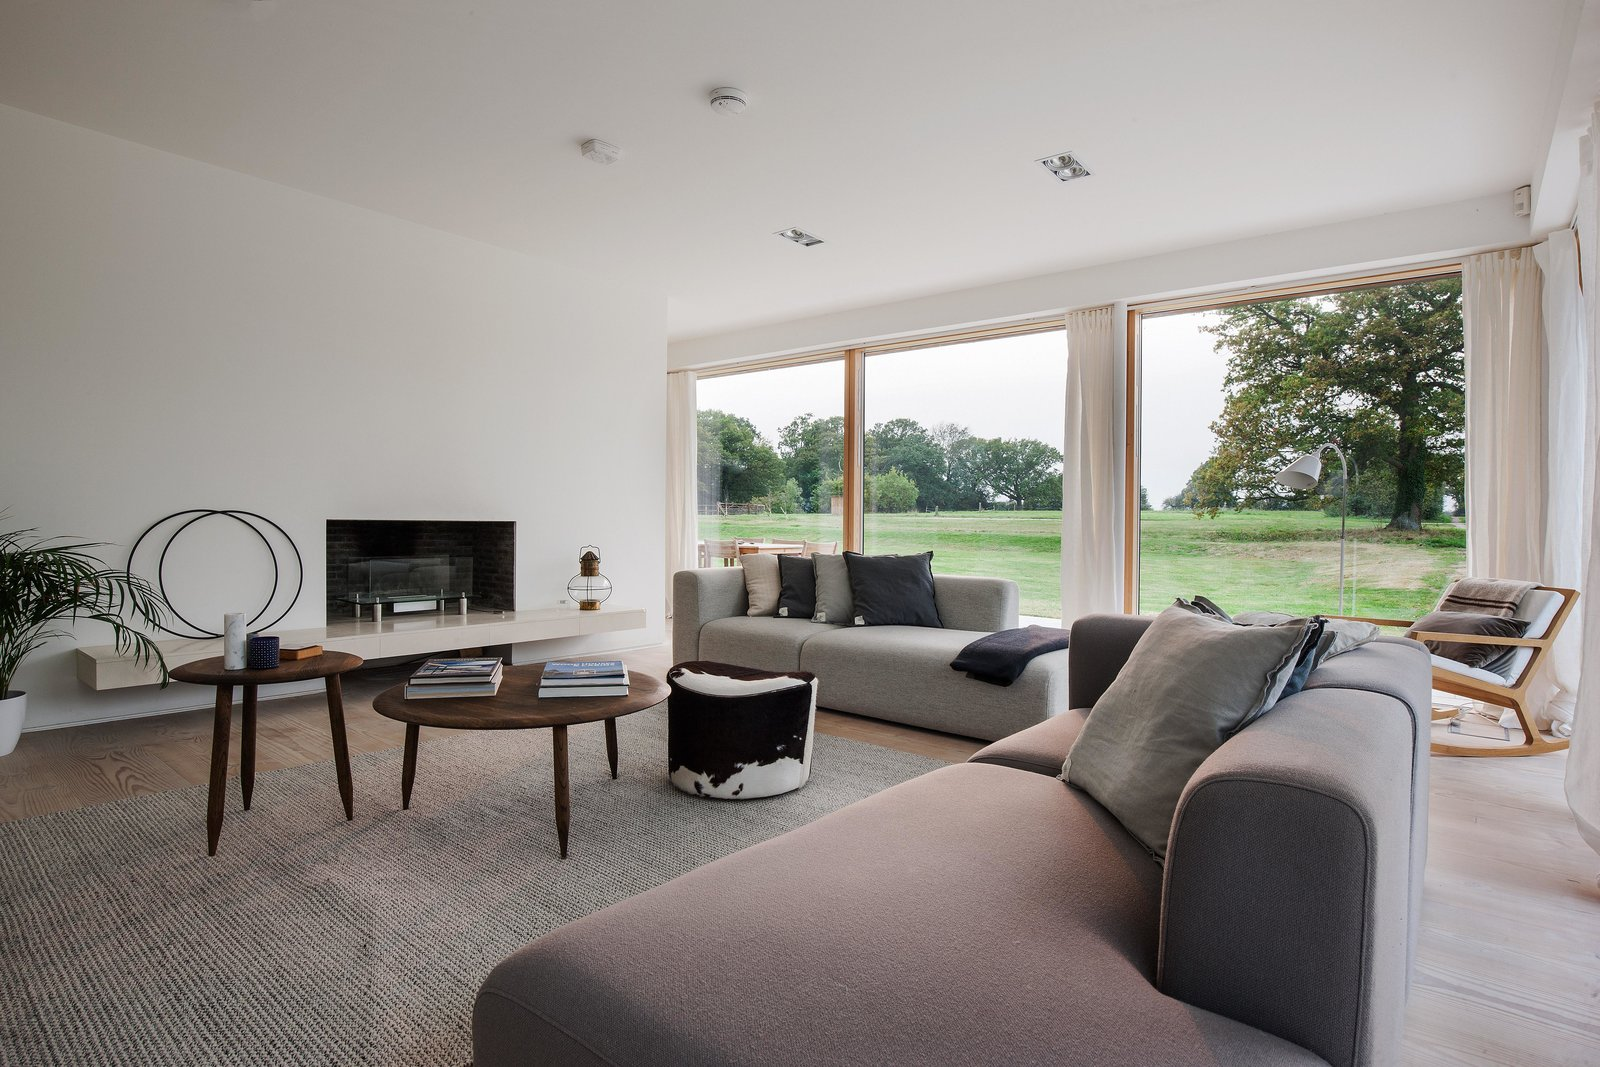 Living Room, Sectional, Coffee Tables, Light Hardwood Floor, Gas Burning Fireplace, Chair, Rug Floor, Recessed Lighting, Lamps, Floor Lighting, Ottomans, and Table Lighting  Photos from A Scandinavian-Style Pavilion in England Is Listed For $2.1M